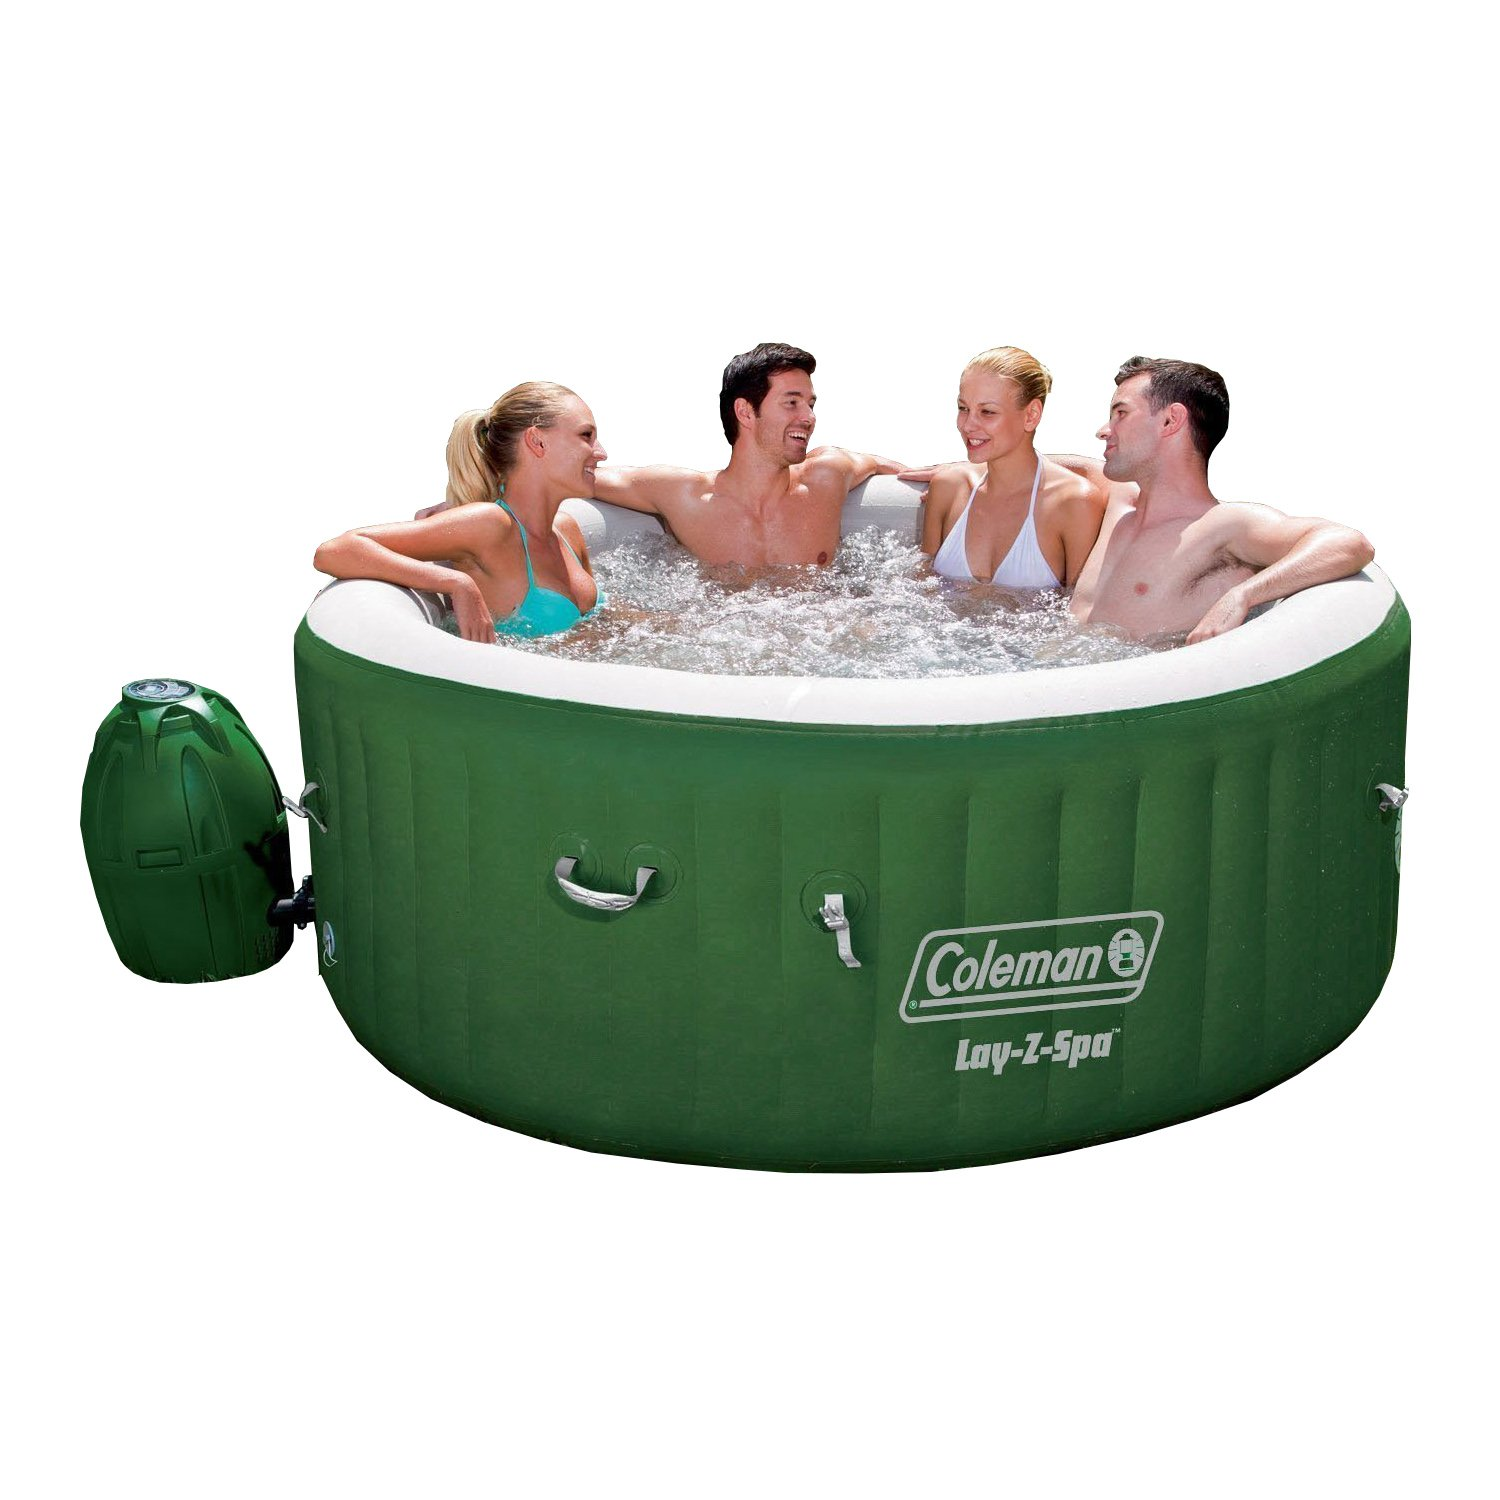 purespa tub watch portable intex review heated reviews youtube hot inflatable person